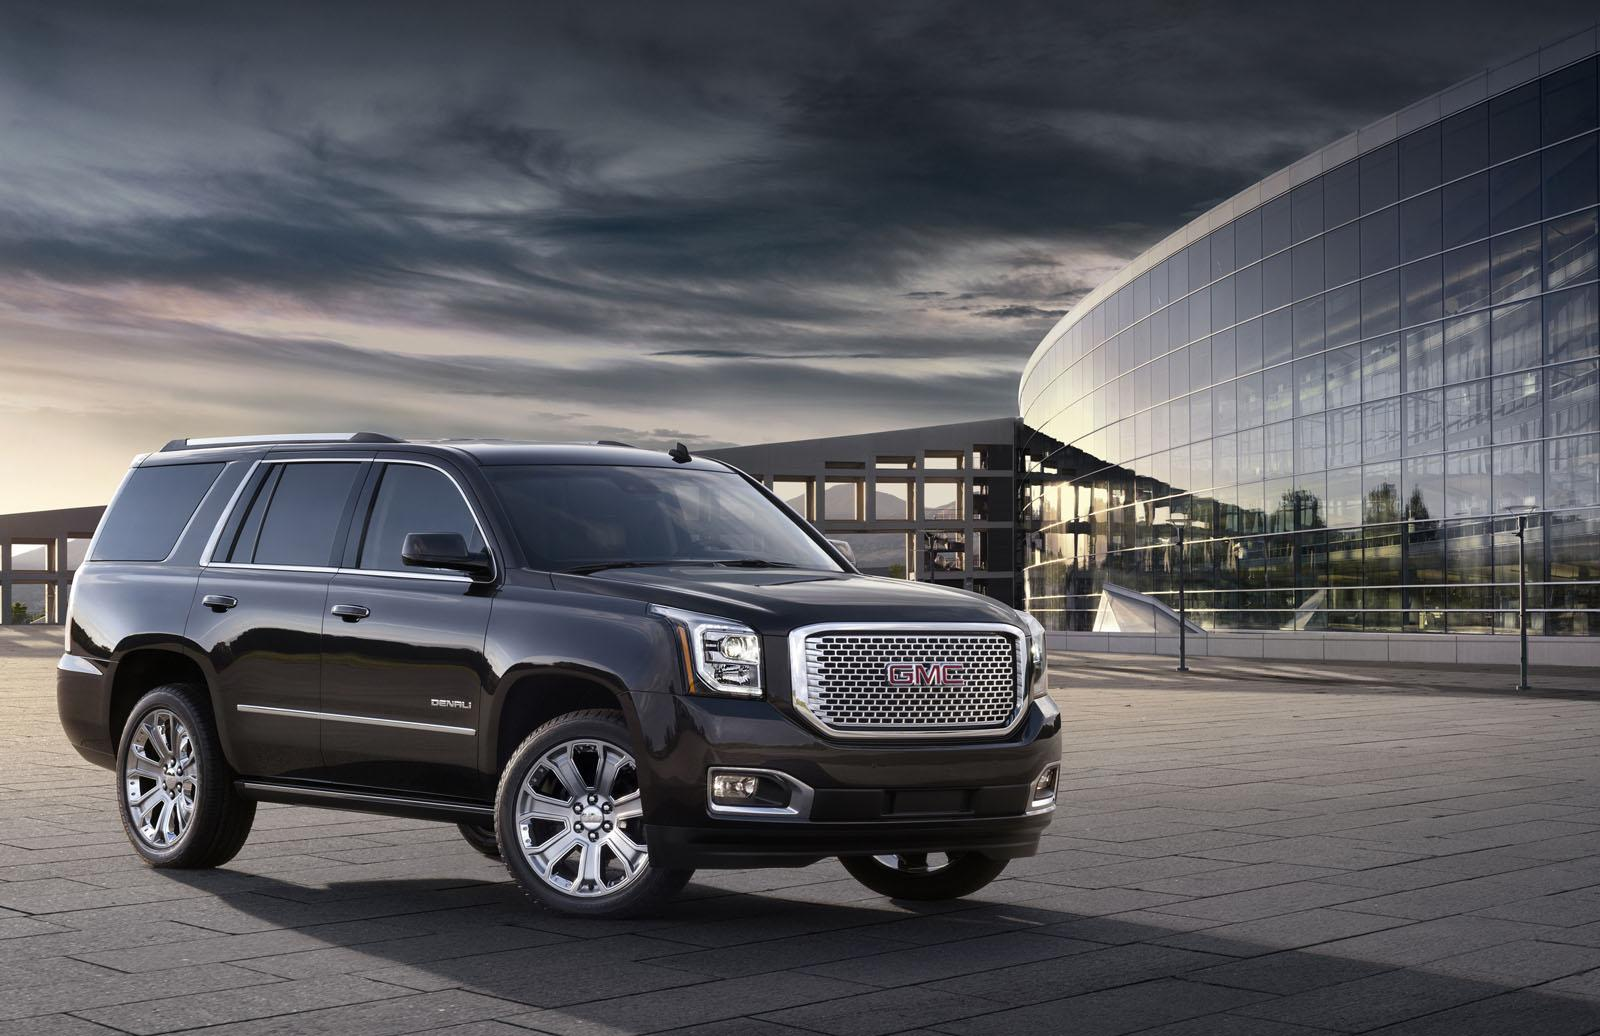 Gmc Denali For Sale >> 2015 GMC Yukon Denali, Yukon XL Revealed [Video] - autoevolution